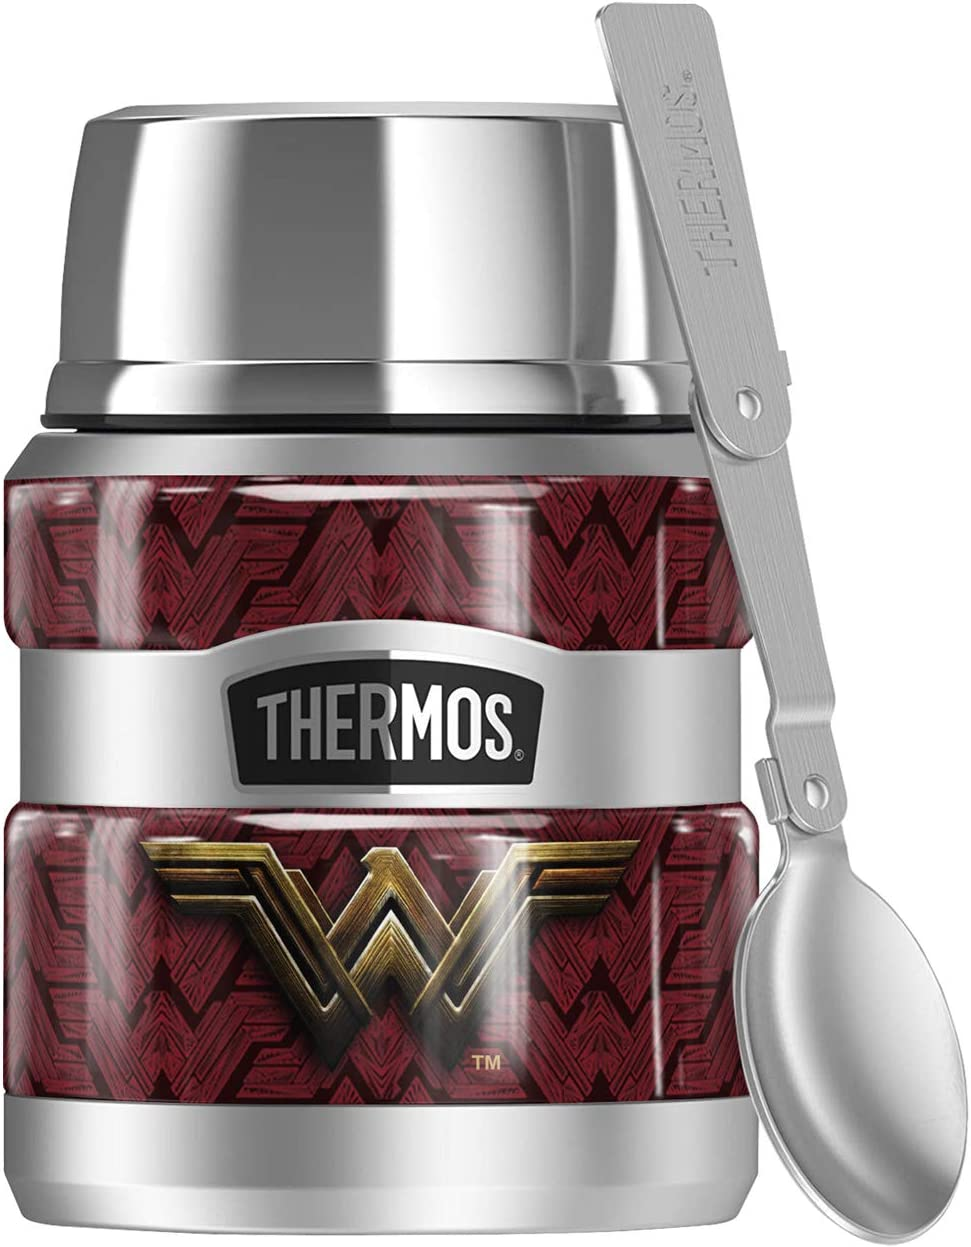 Justice League Movie Wonder Woman Logo, THERMOS STAINLESS KING Stainless Steel Food Jar with Folding Spoon, Vacuum insulated & Double Wall, 16oz